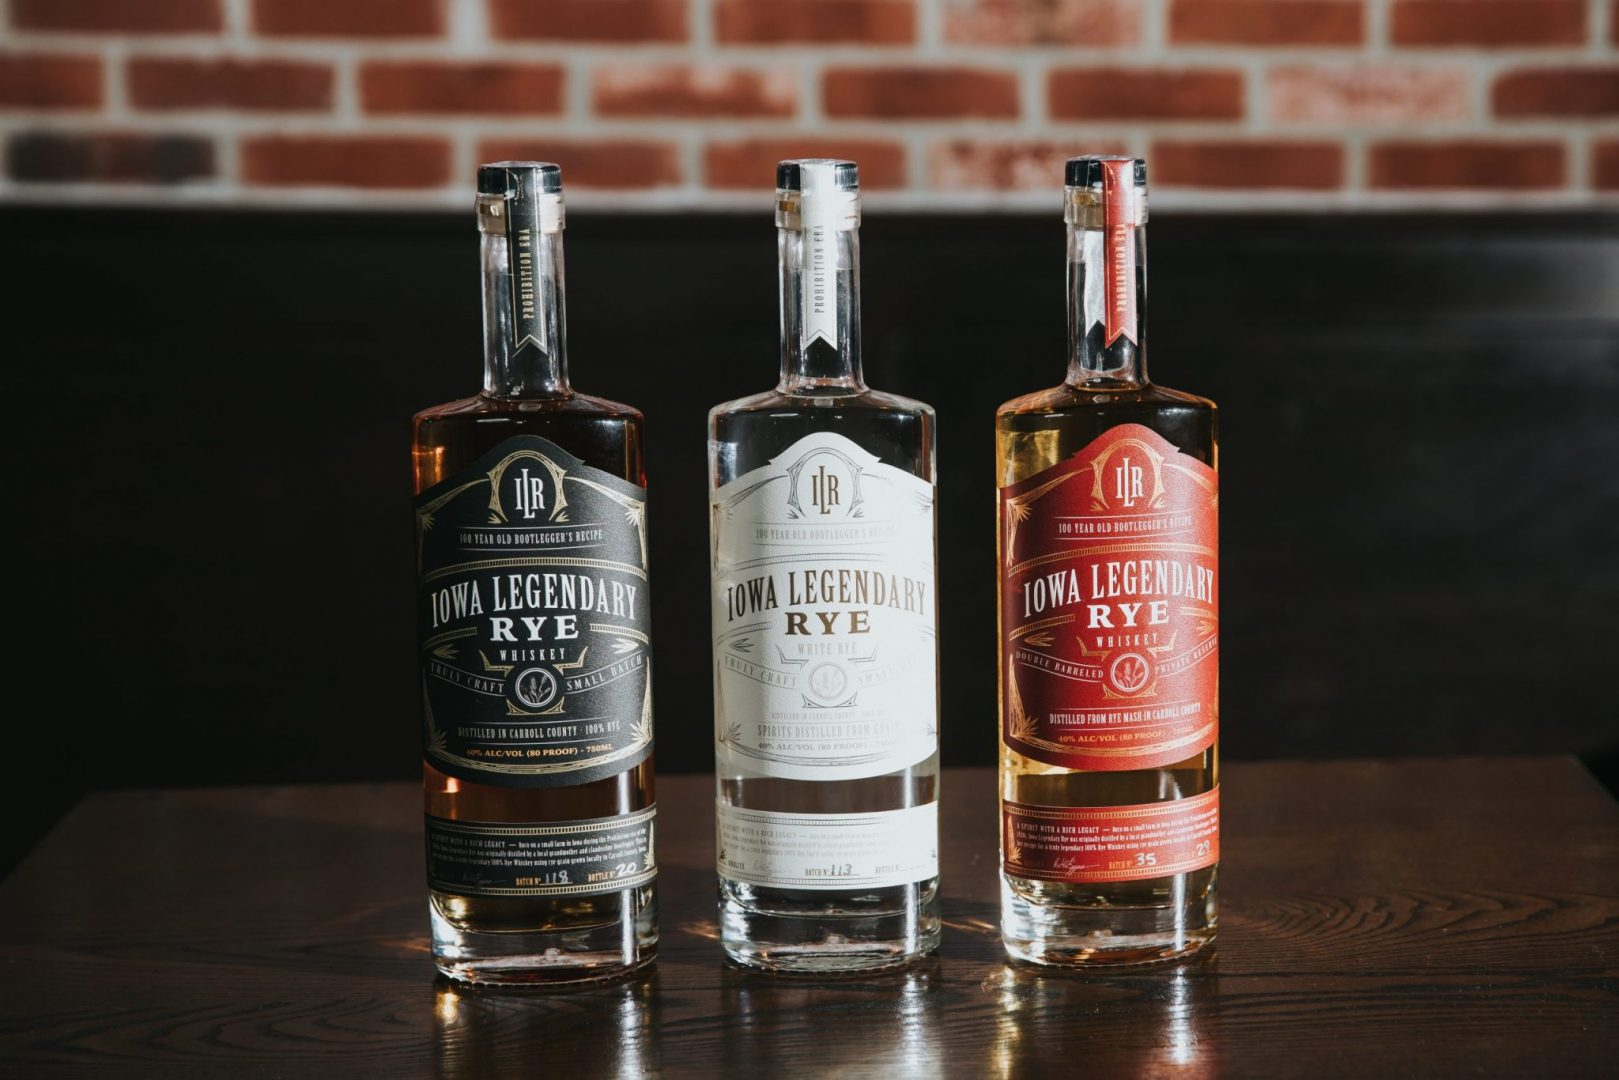 How to order an American Rye Whiskey